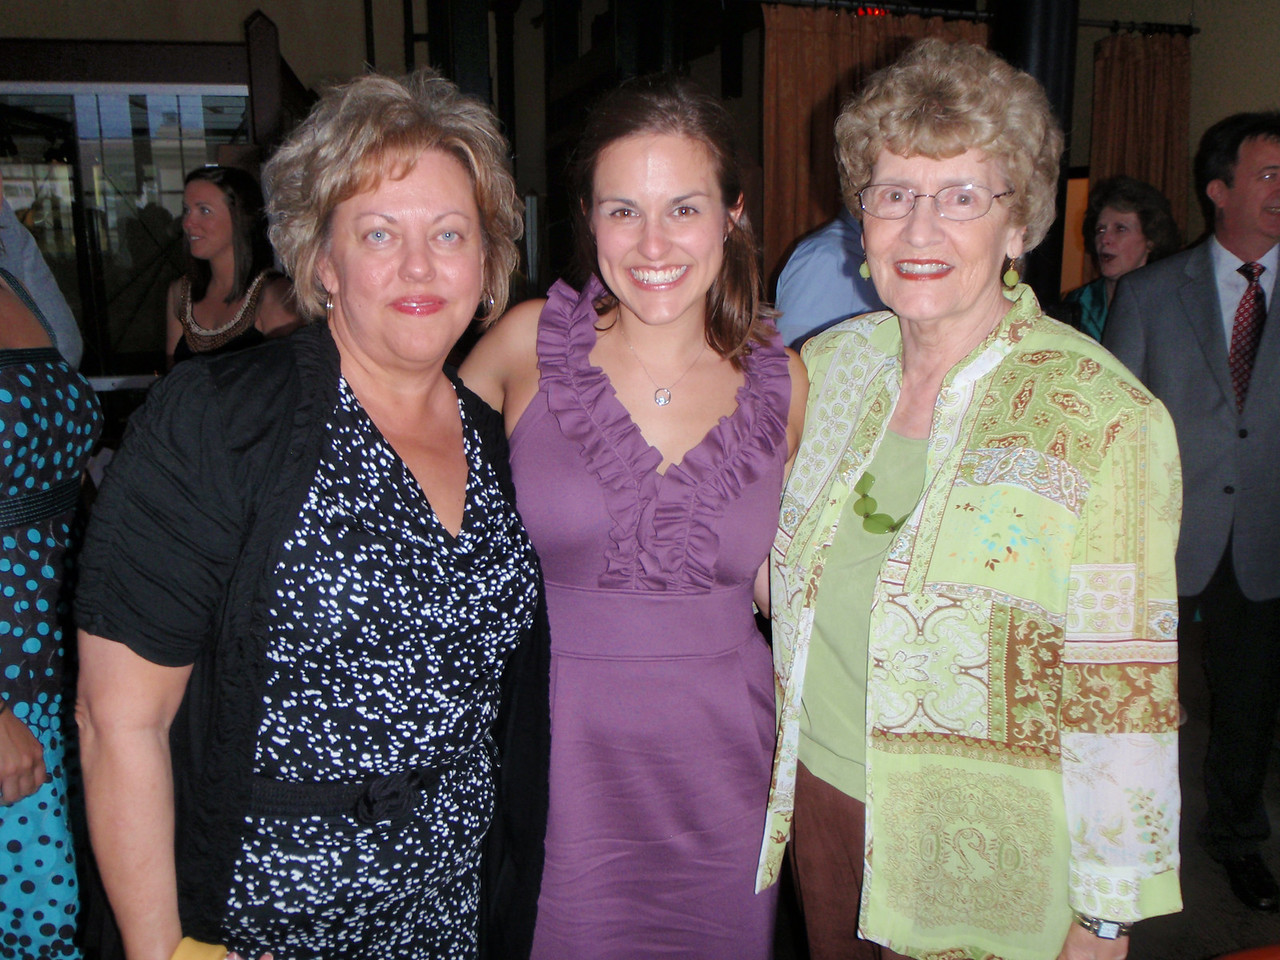 Susan, Katie, and Mom